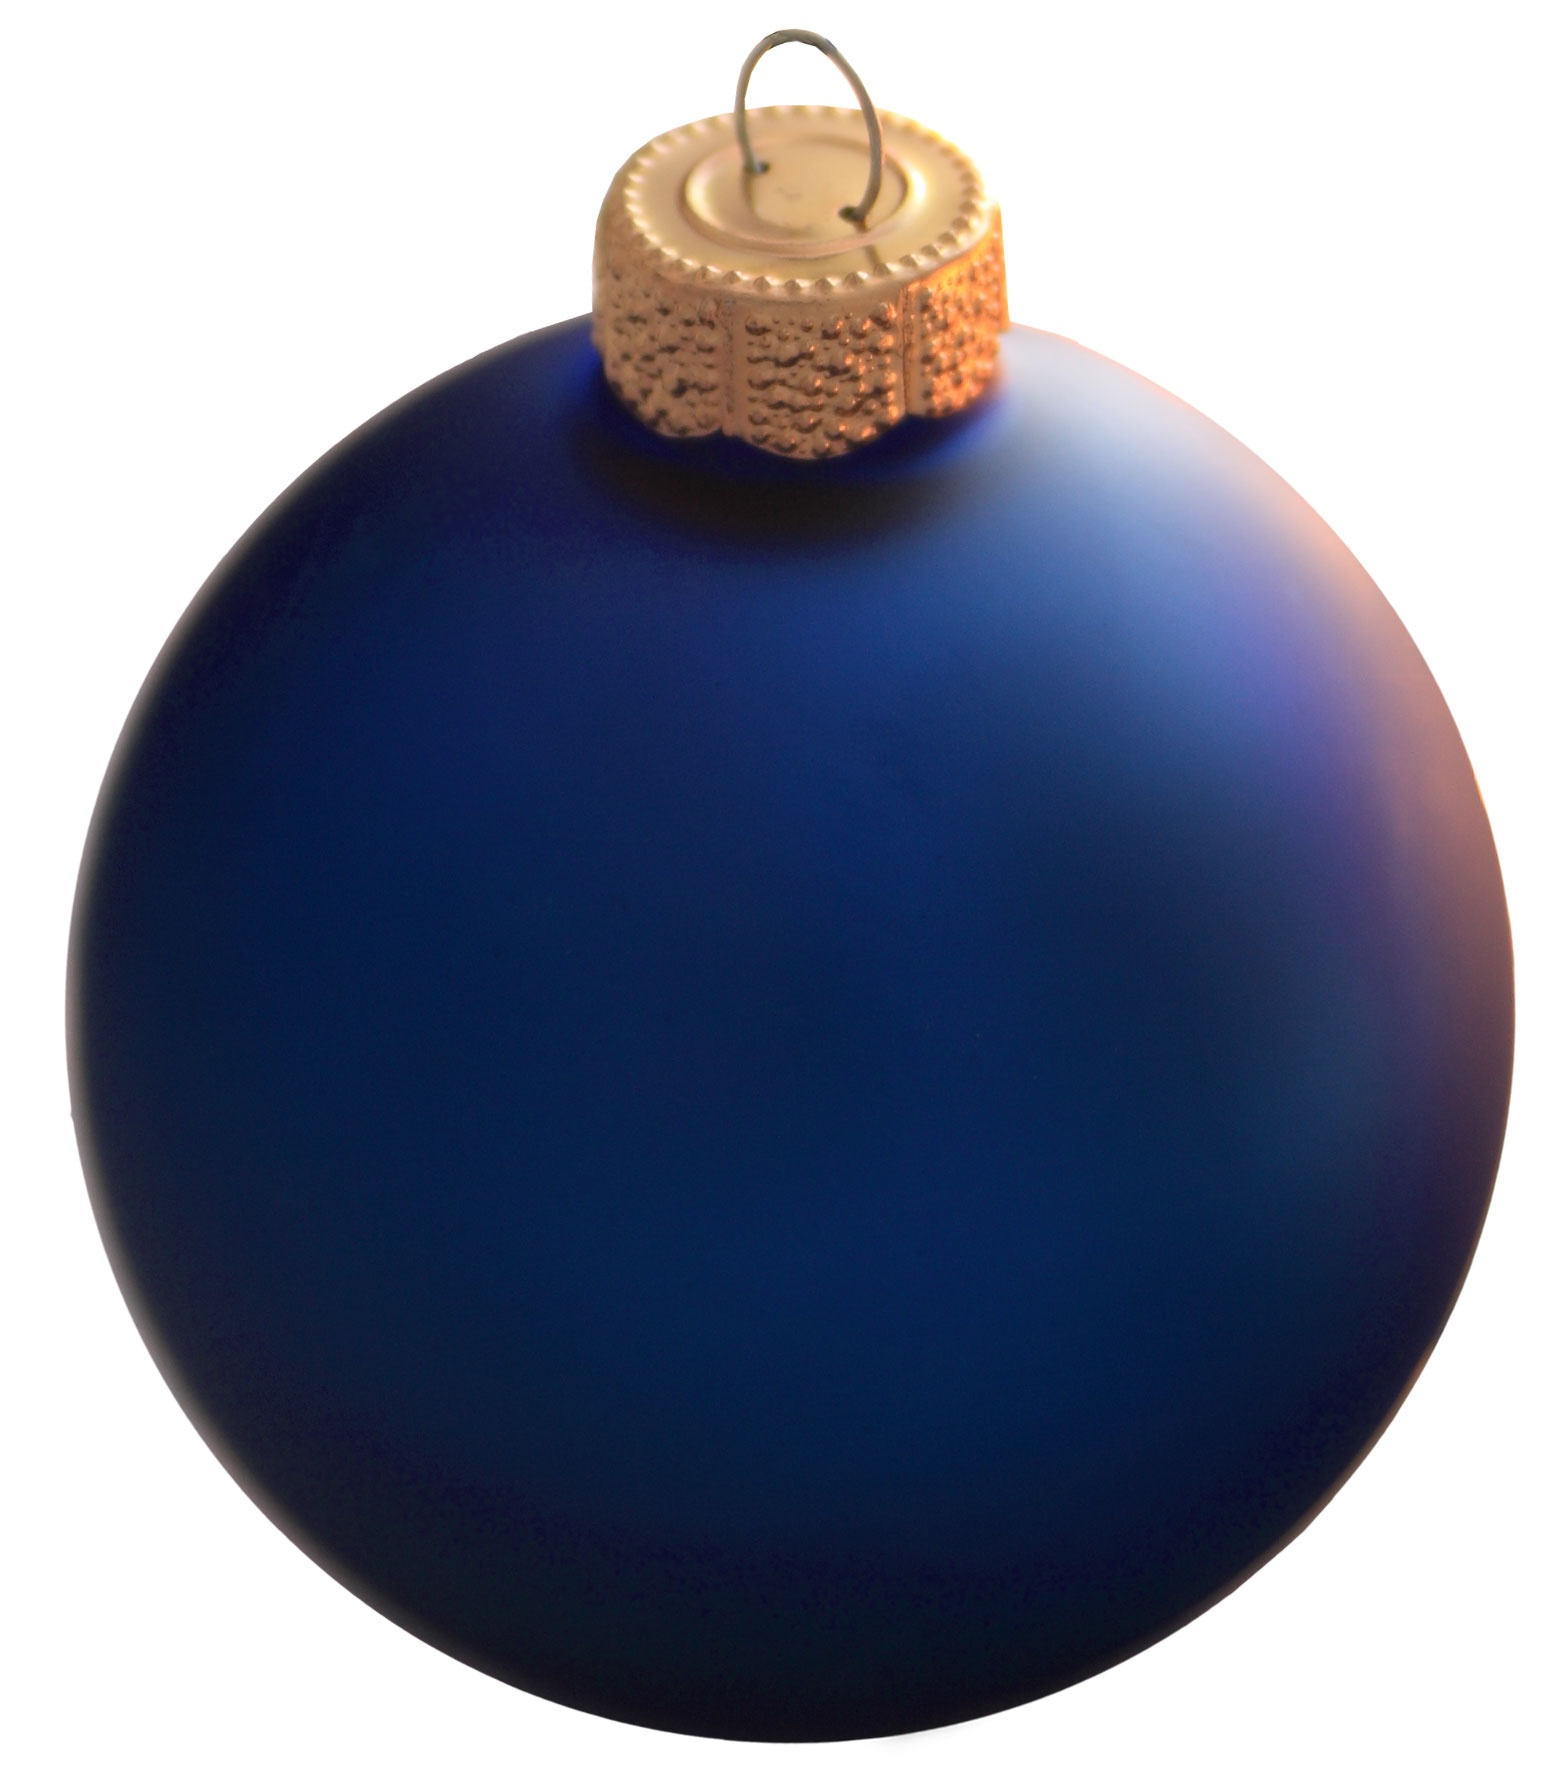 cobalt blue glass ball christmas ornament - Navy Blue Christmas Decorations